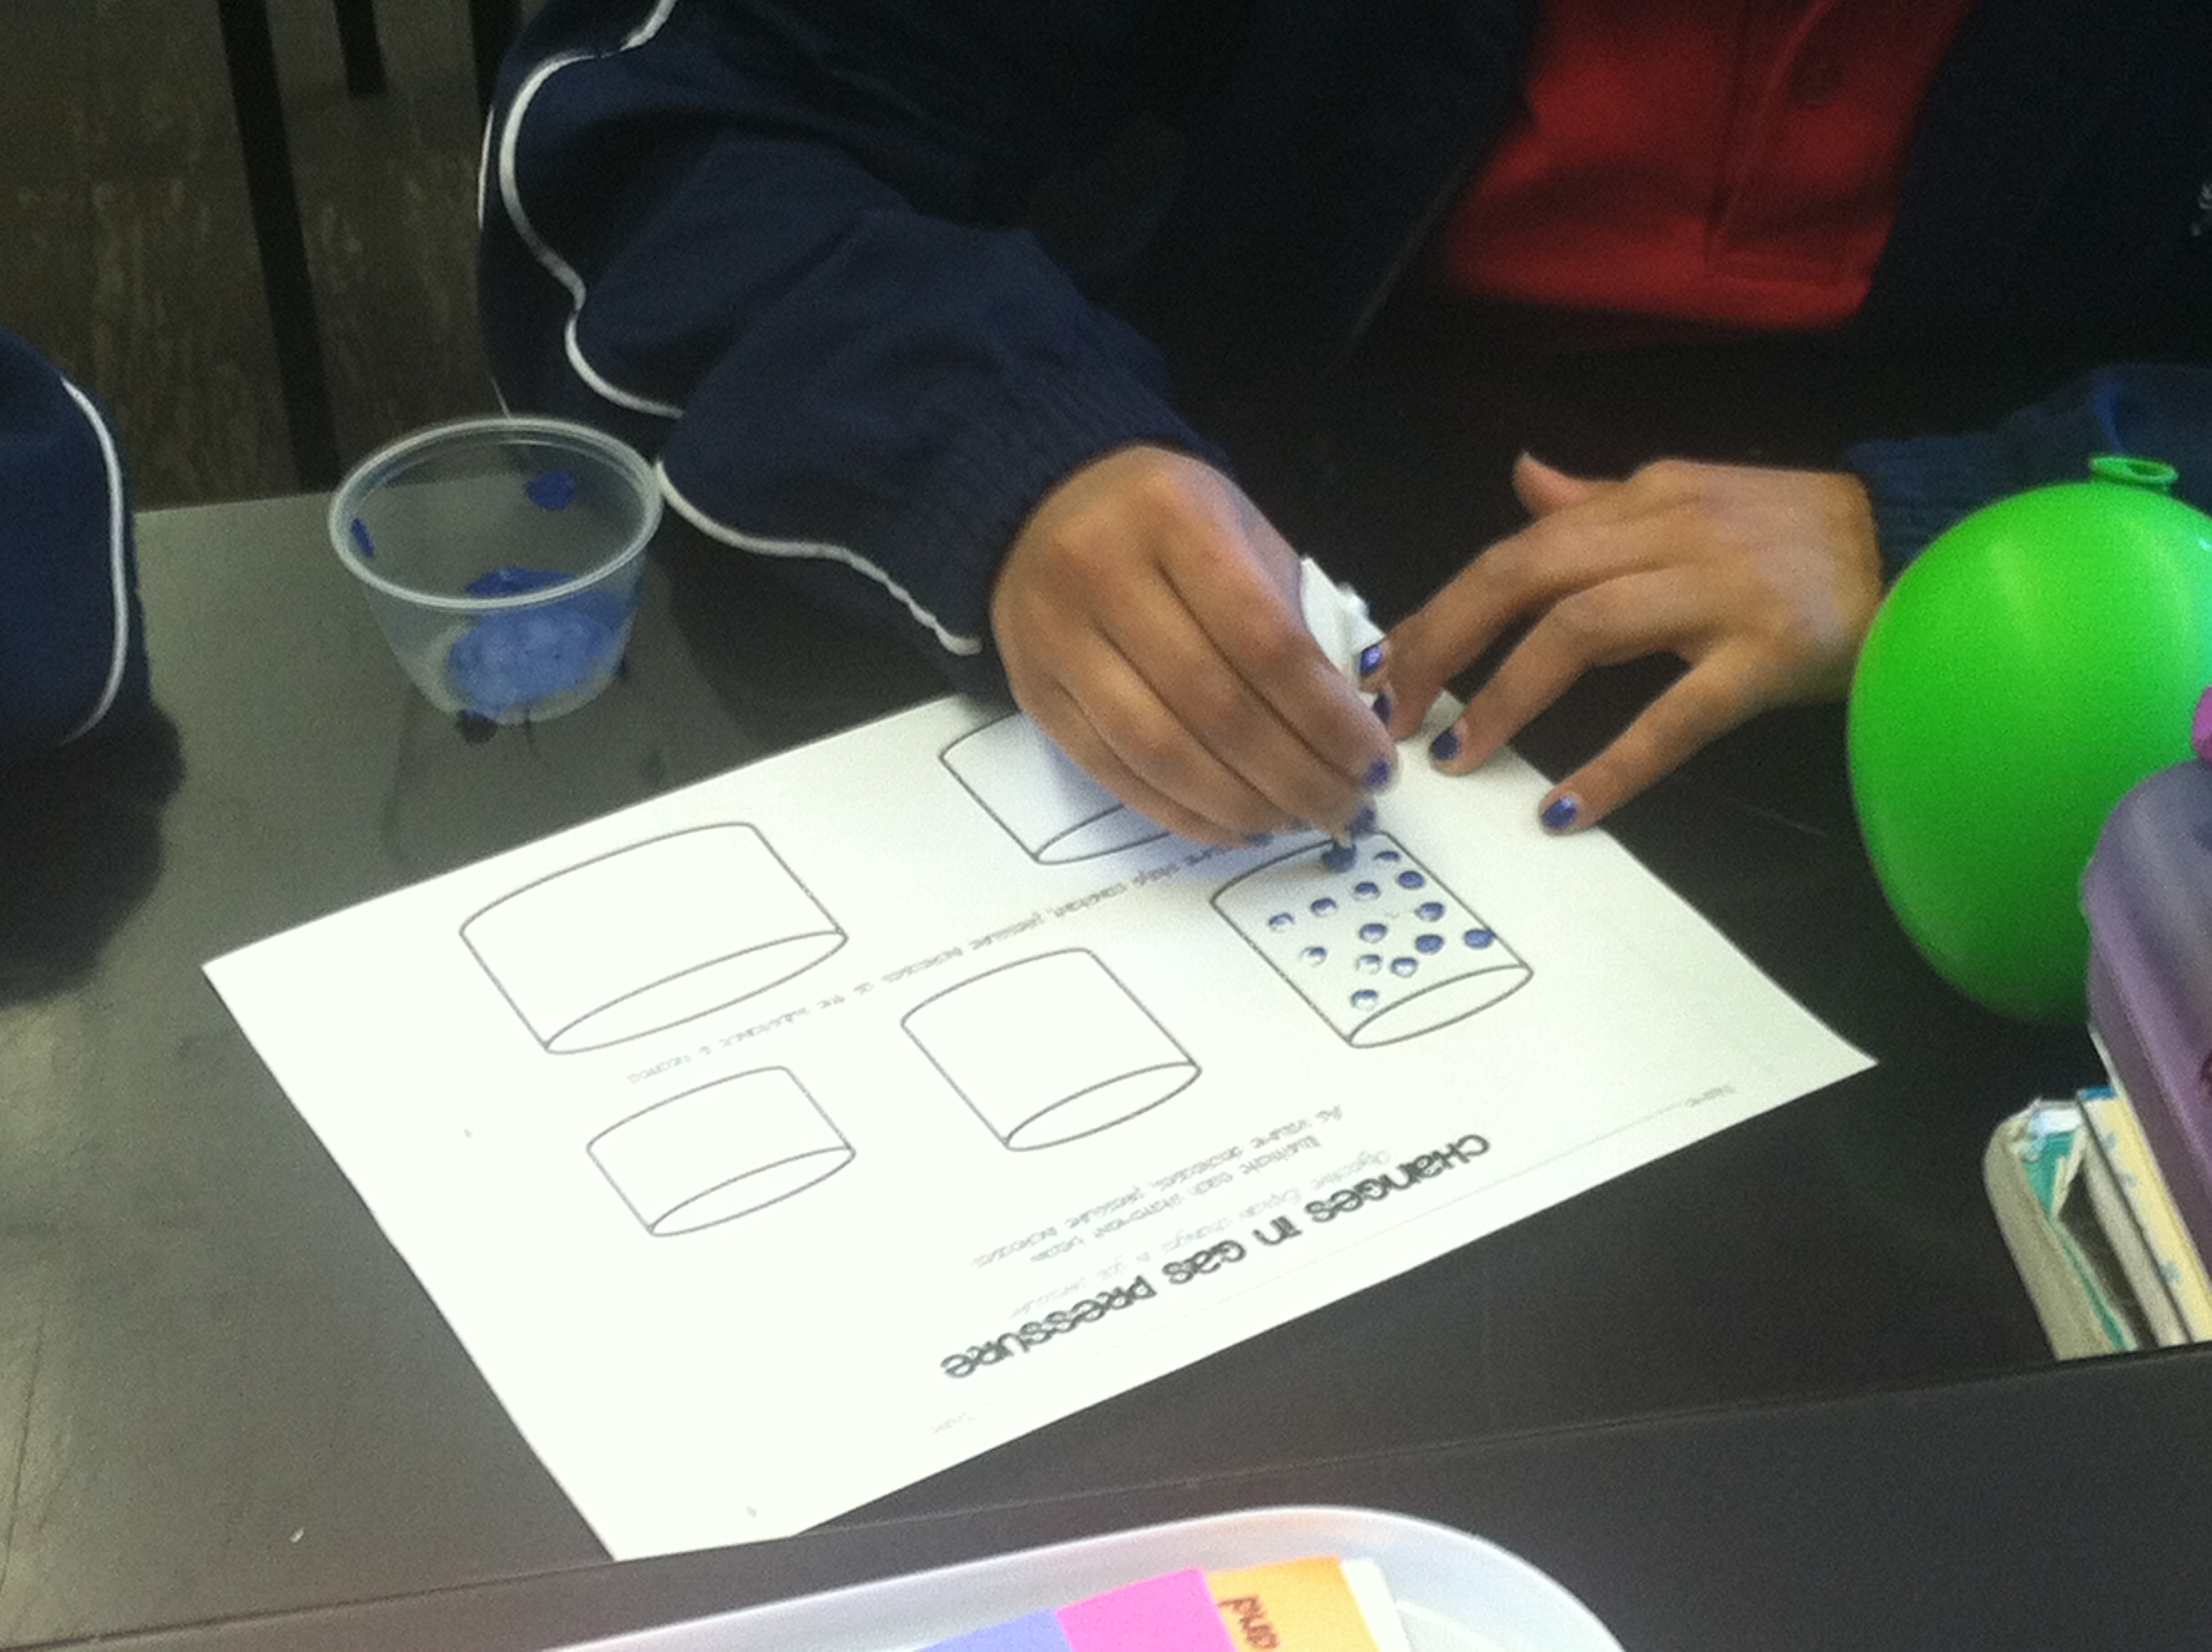 They then painted 25 particles in each of the small cups. This is a good  way for students to visualize the gas particles and why pressure increases.